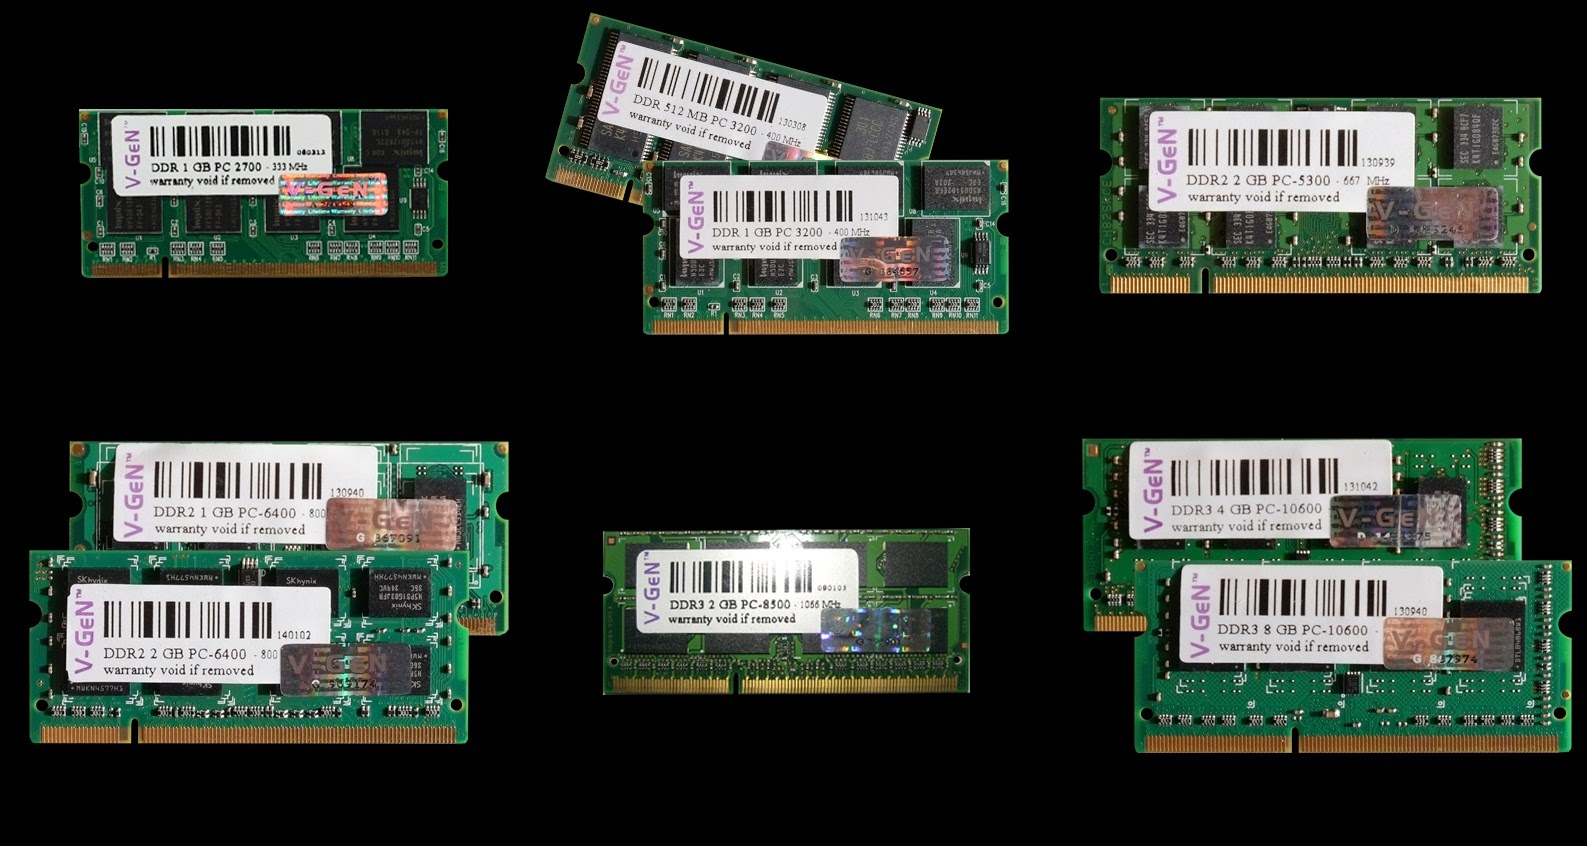 Pegasus Image Vgen Ddr 2 2gb Pc 6400 Posted By At 834 Pm 0 Comments